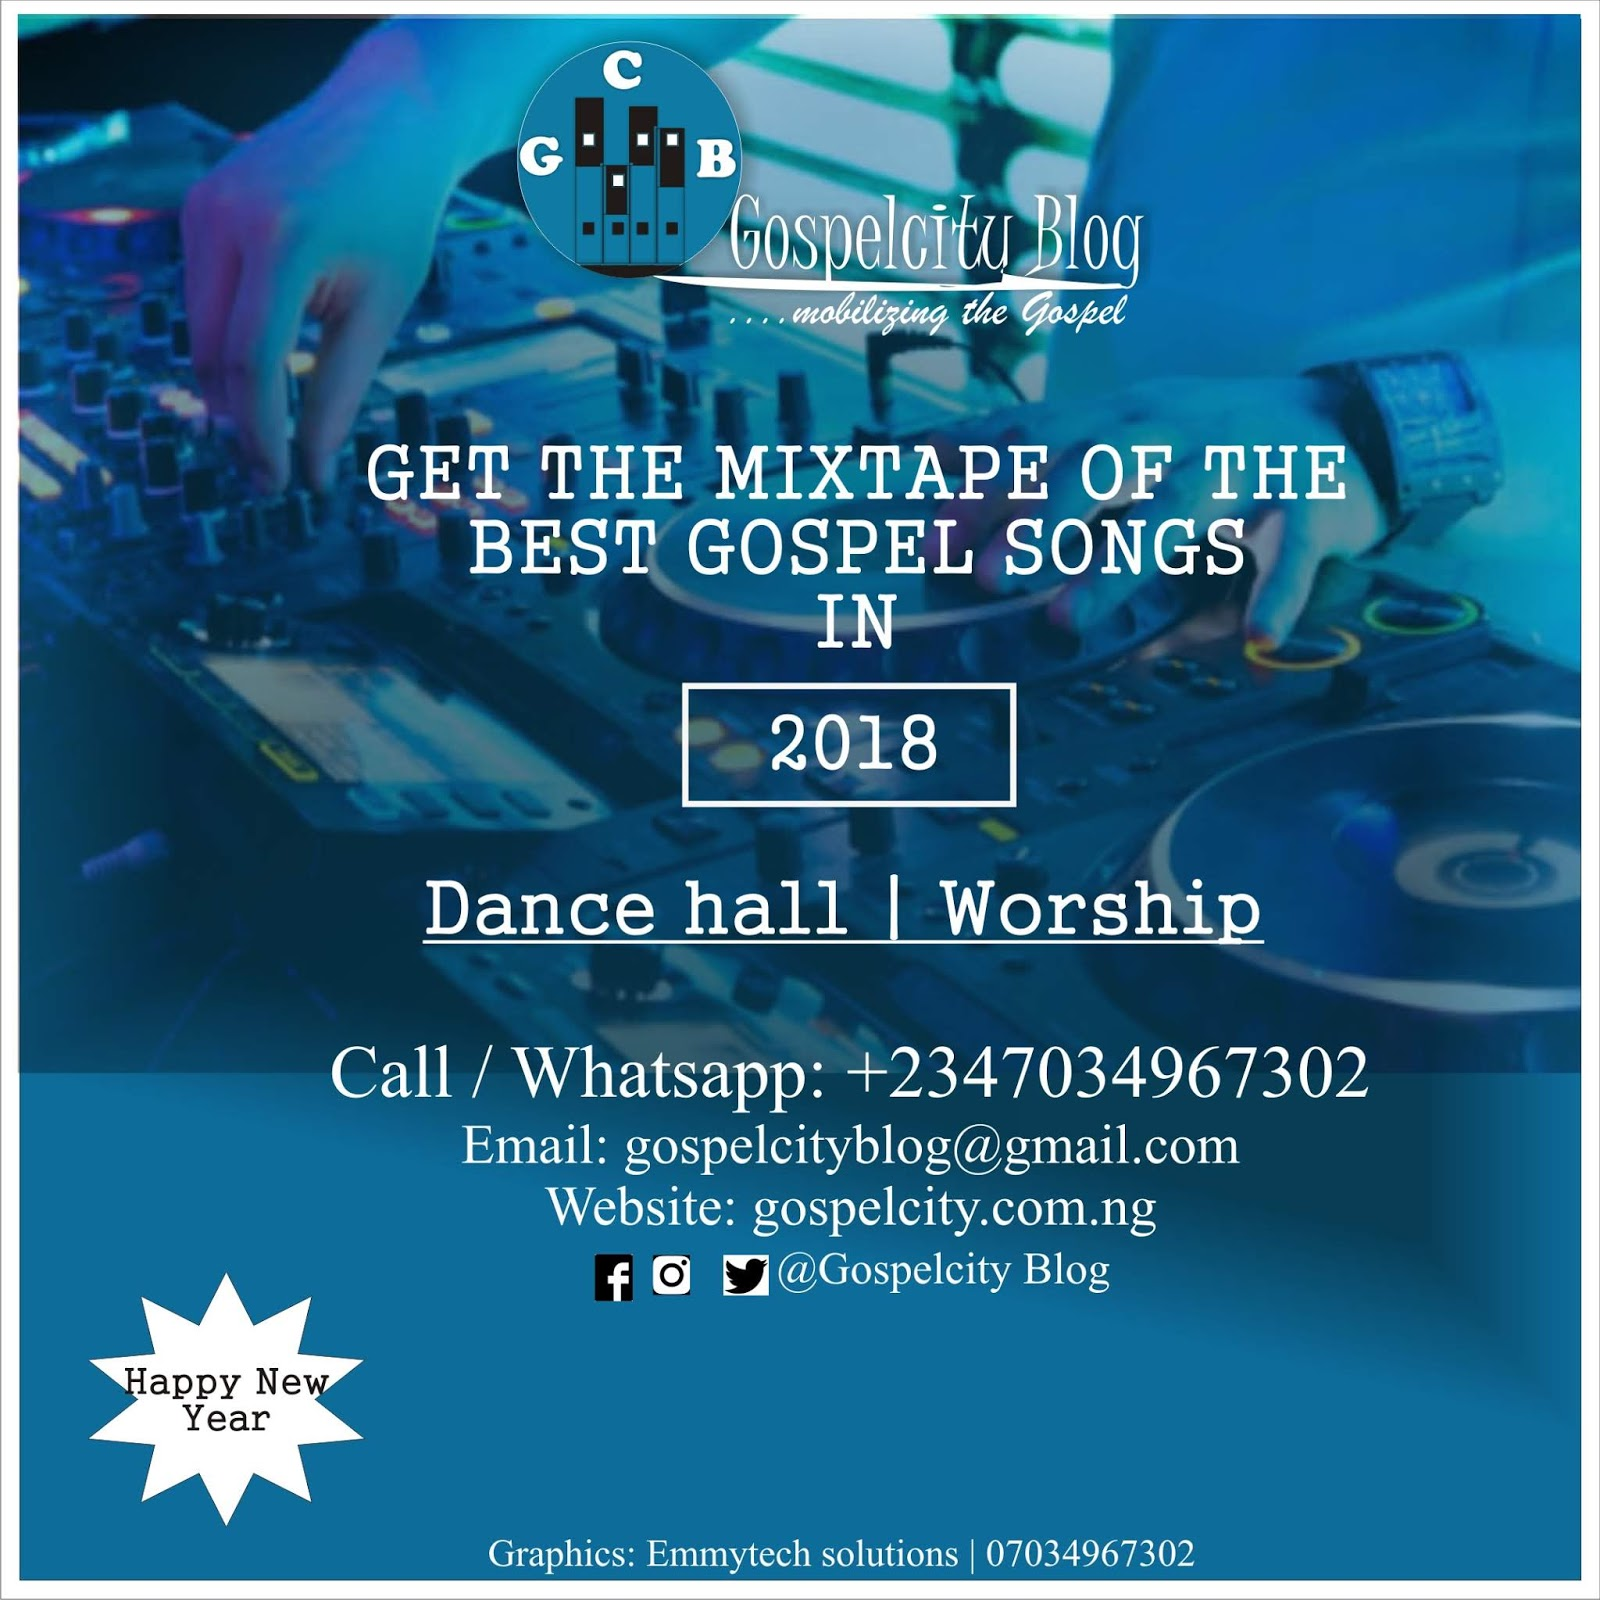 Music] Download Mixtape of the best Gospel Songs in 2018 (gbedu